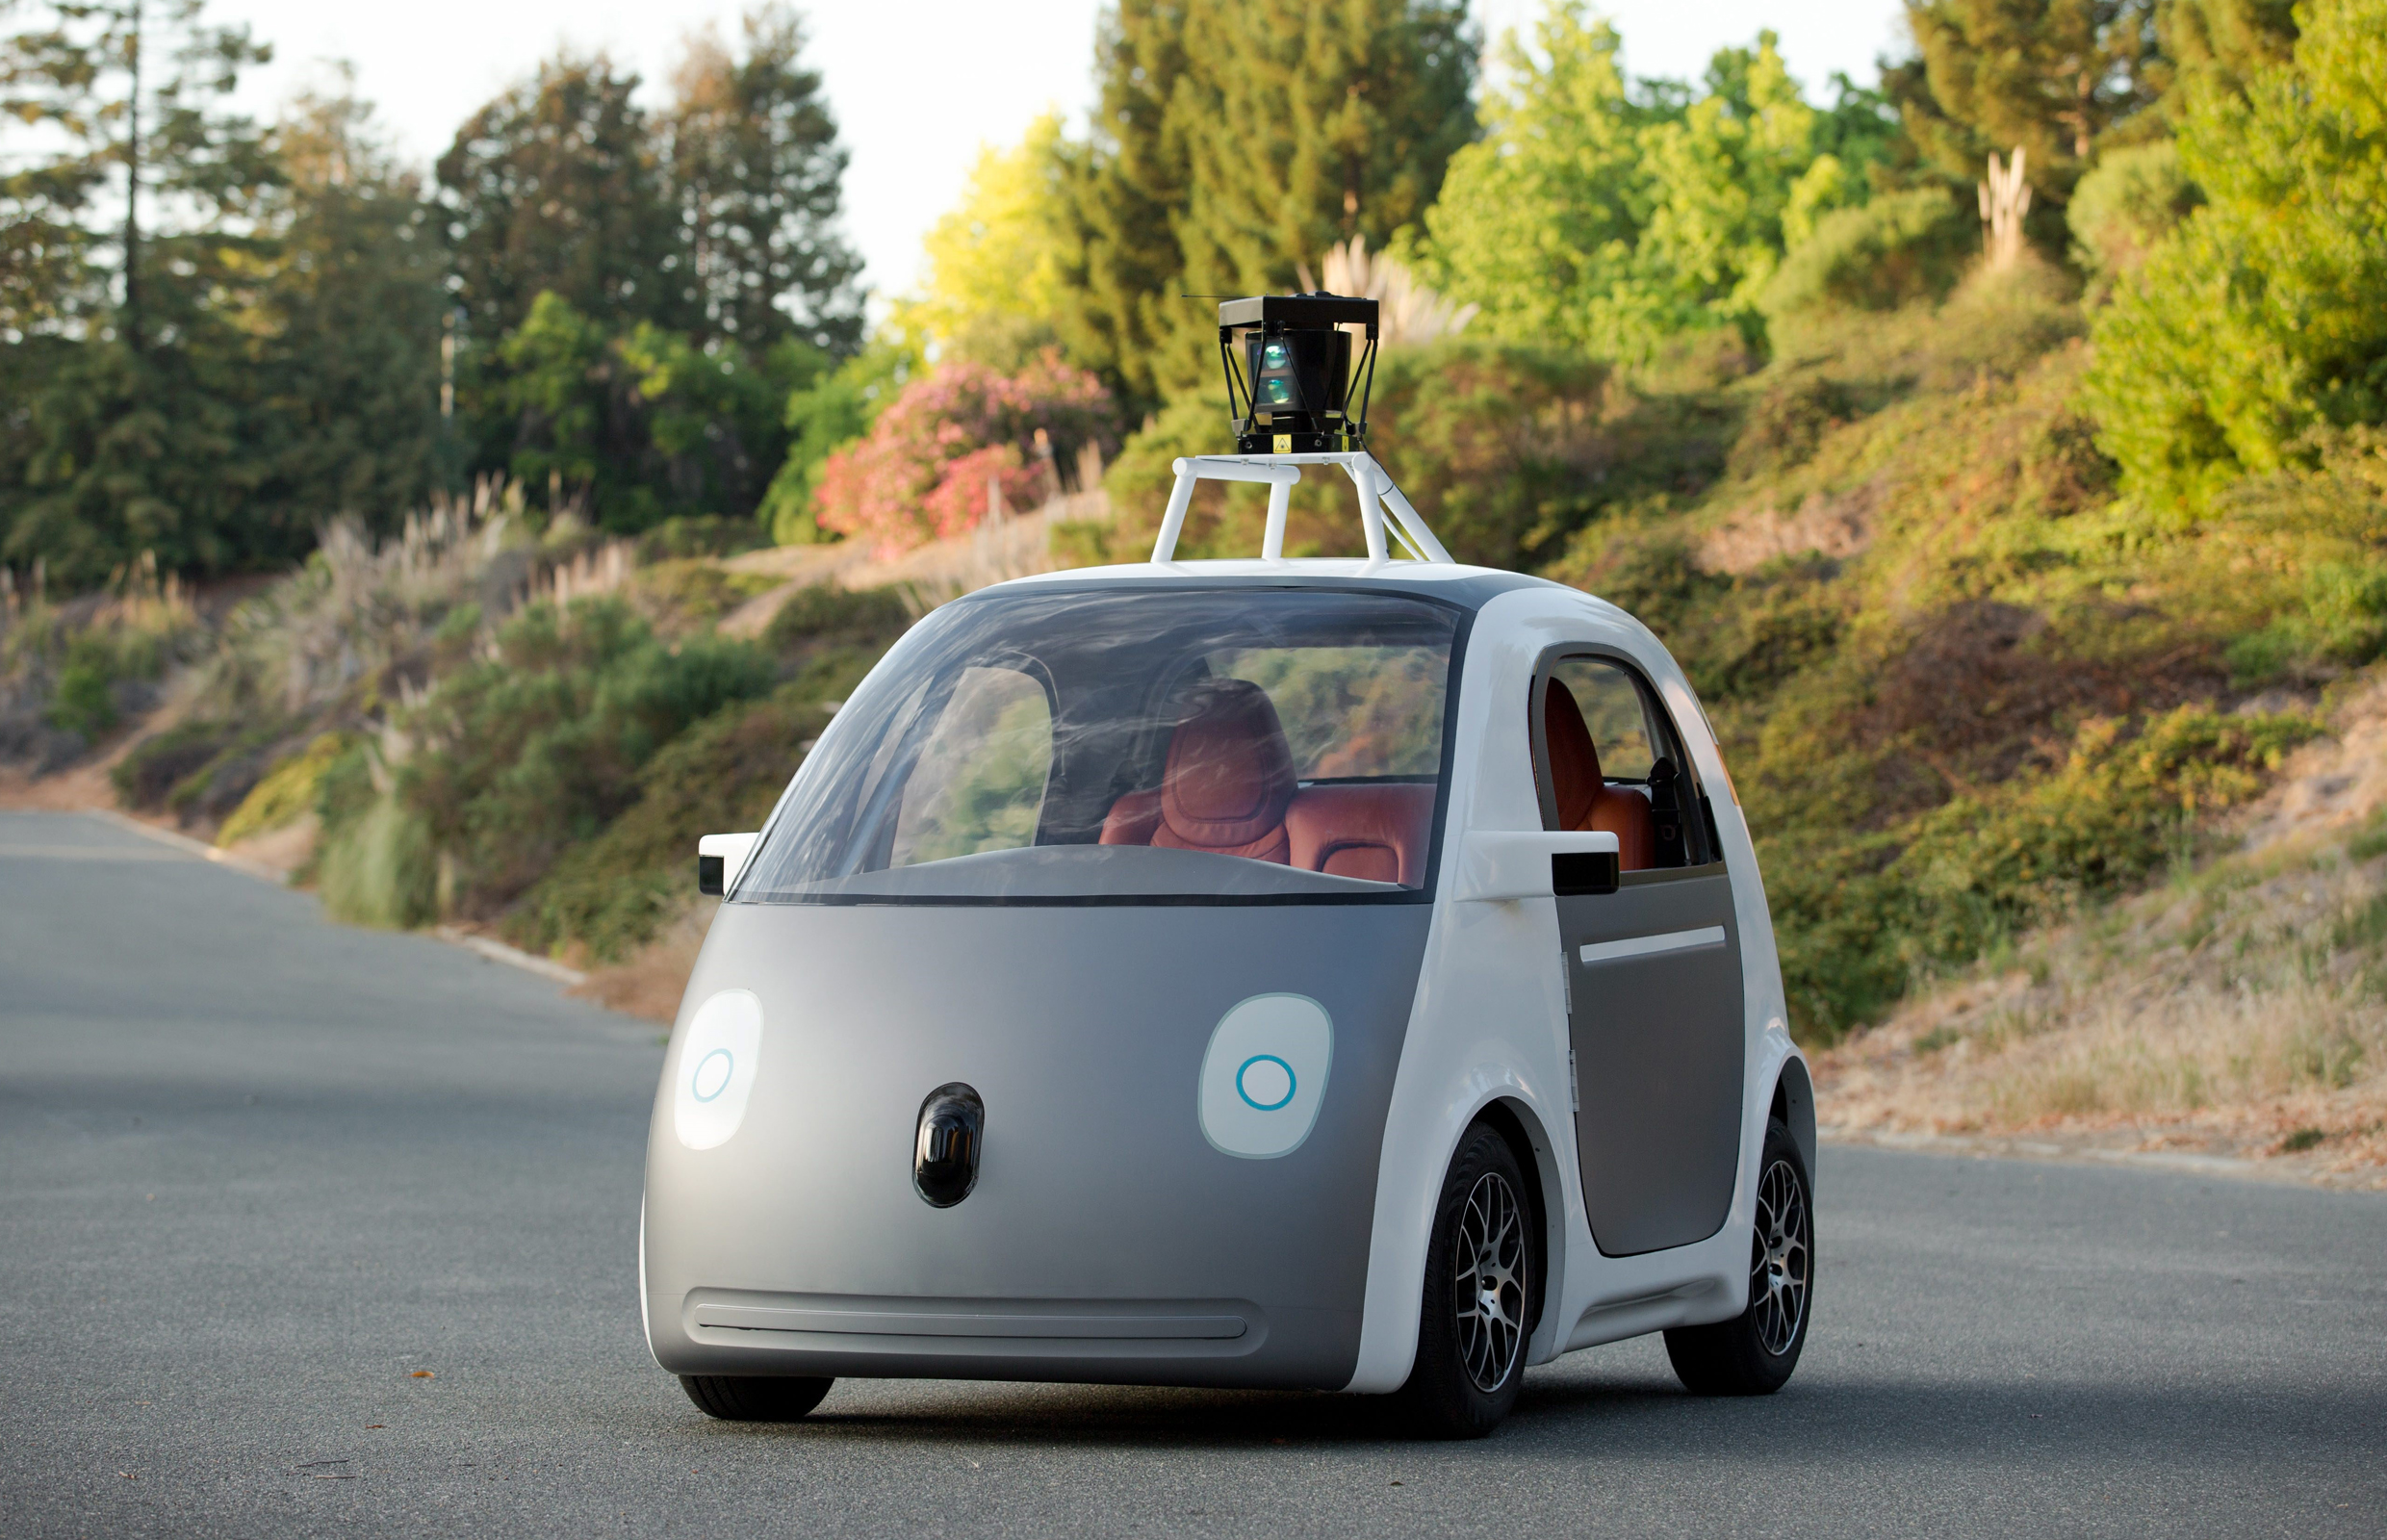 An early prototype of a self-driving Google car.